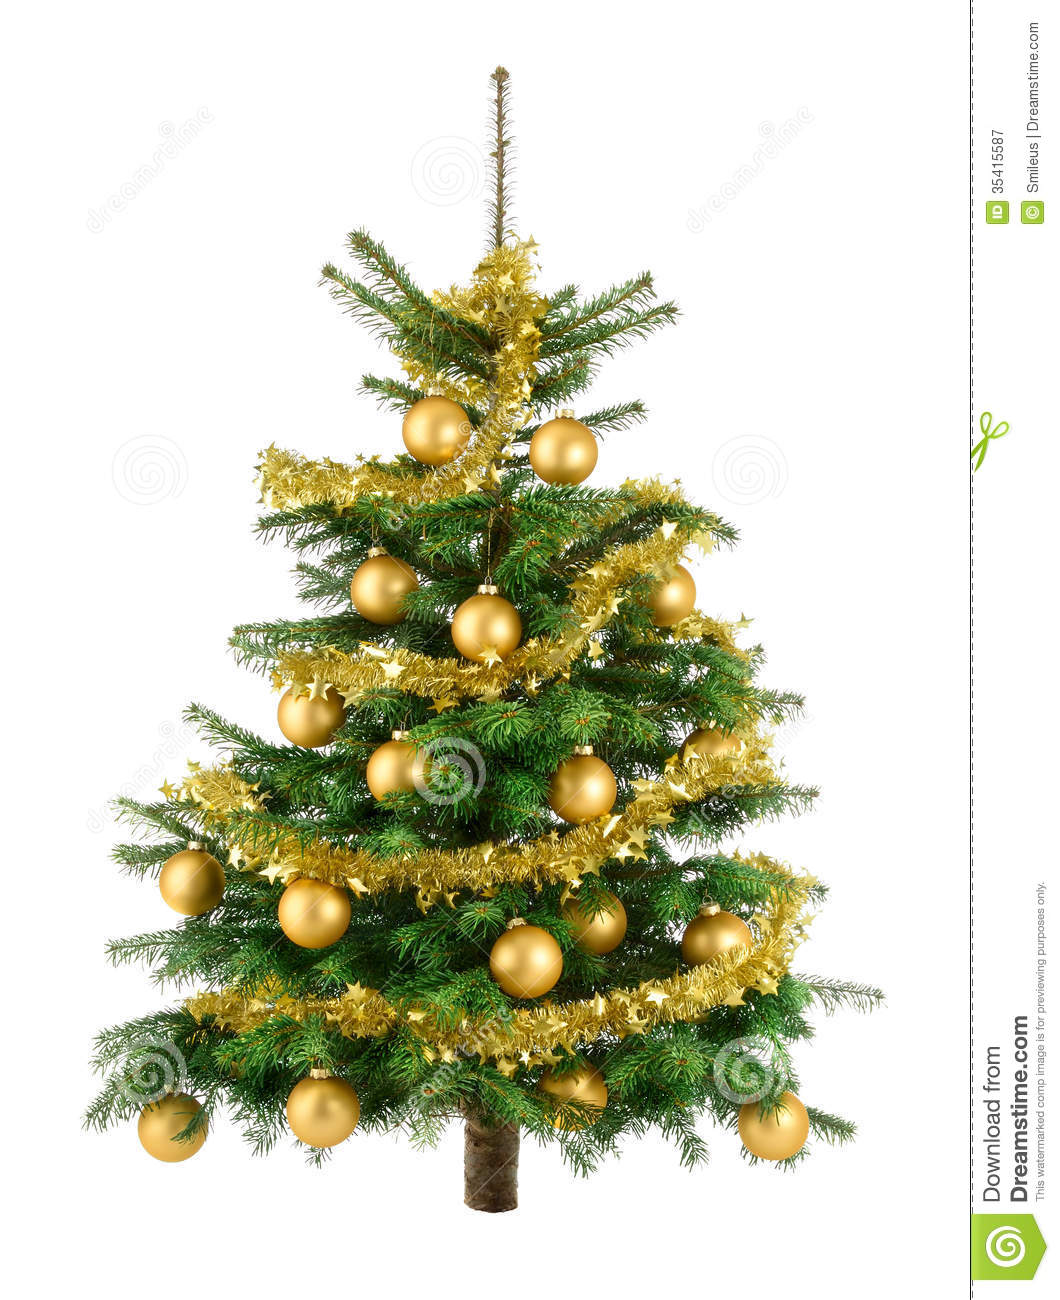 Lush Christmas Tree With Gold Baubles Royalty Free Stock ...